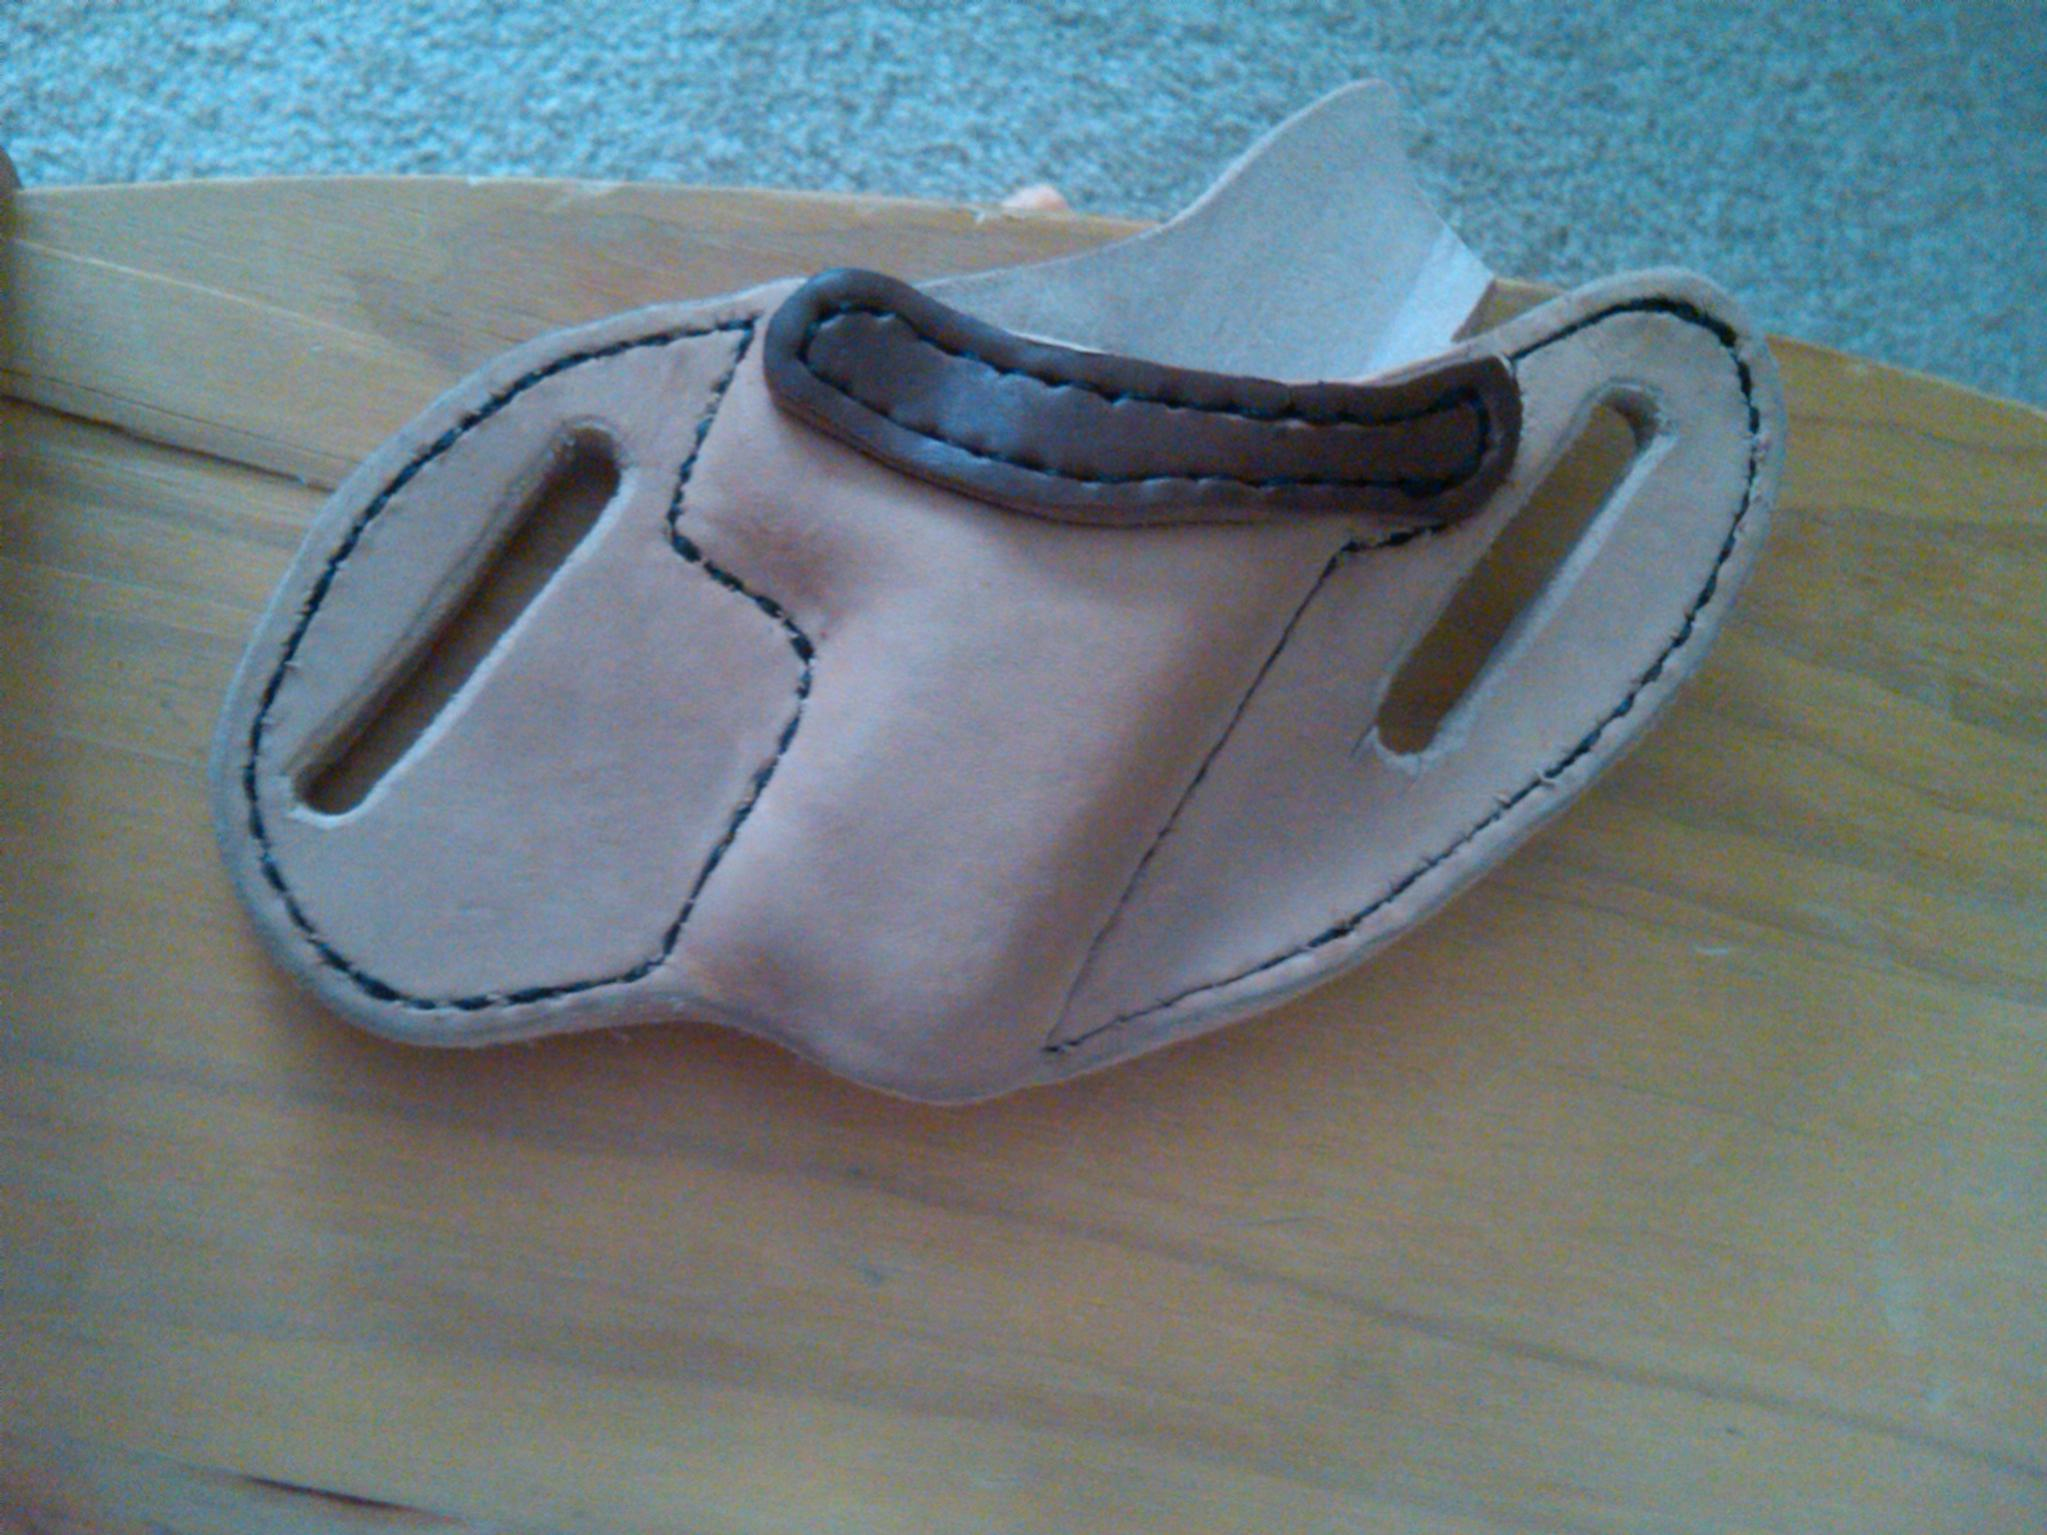 Just finished my first holster!-holster-1-db380.jpg